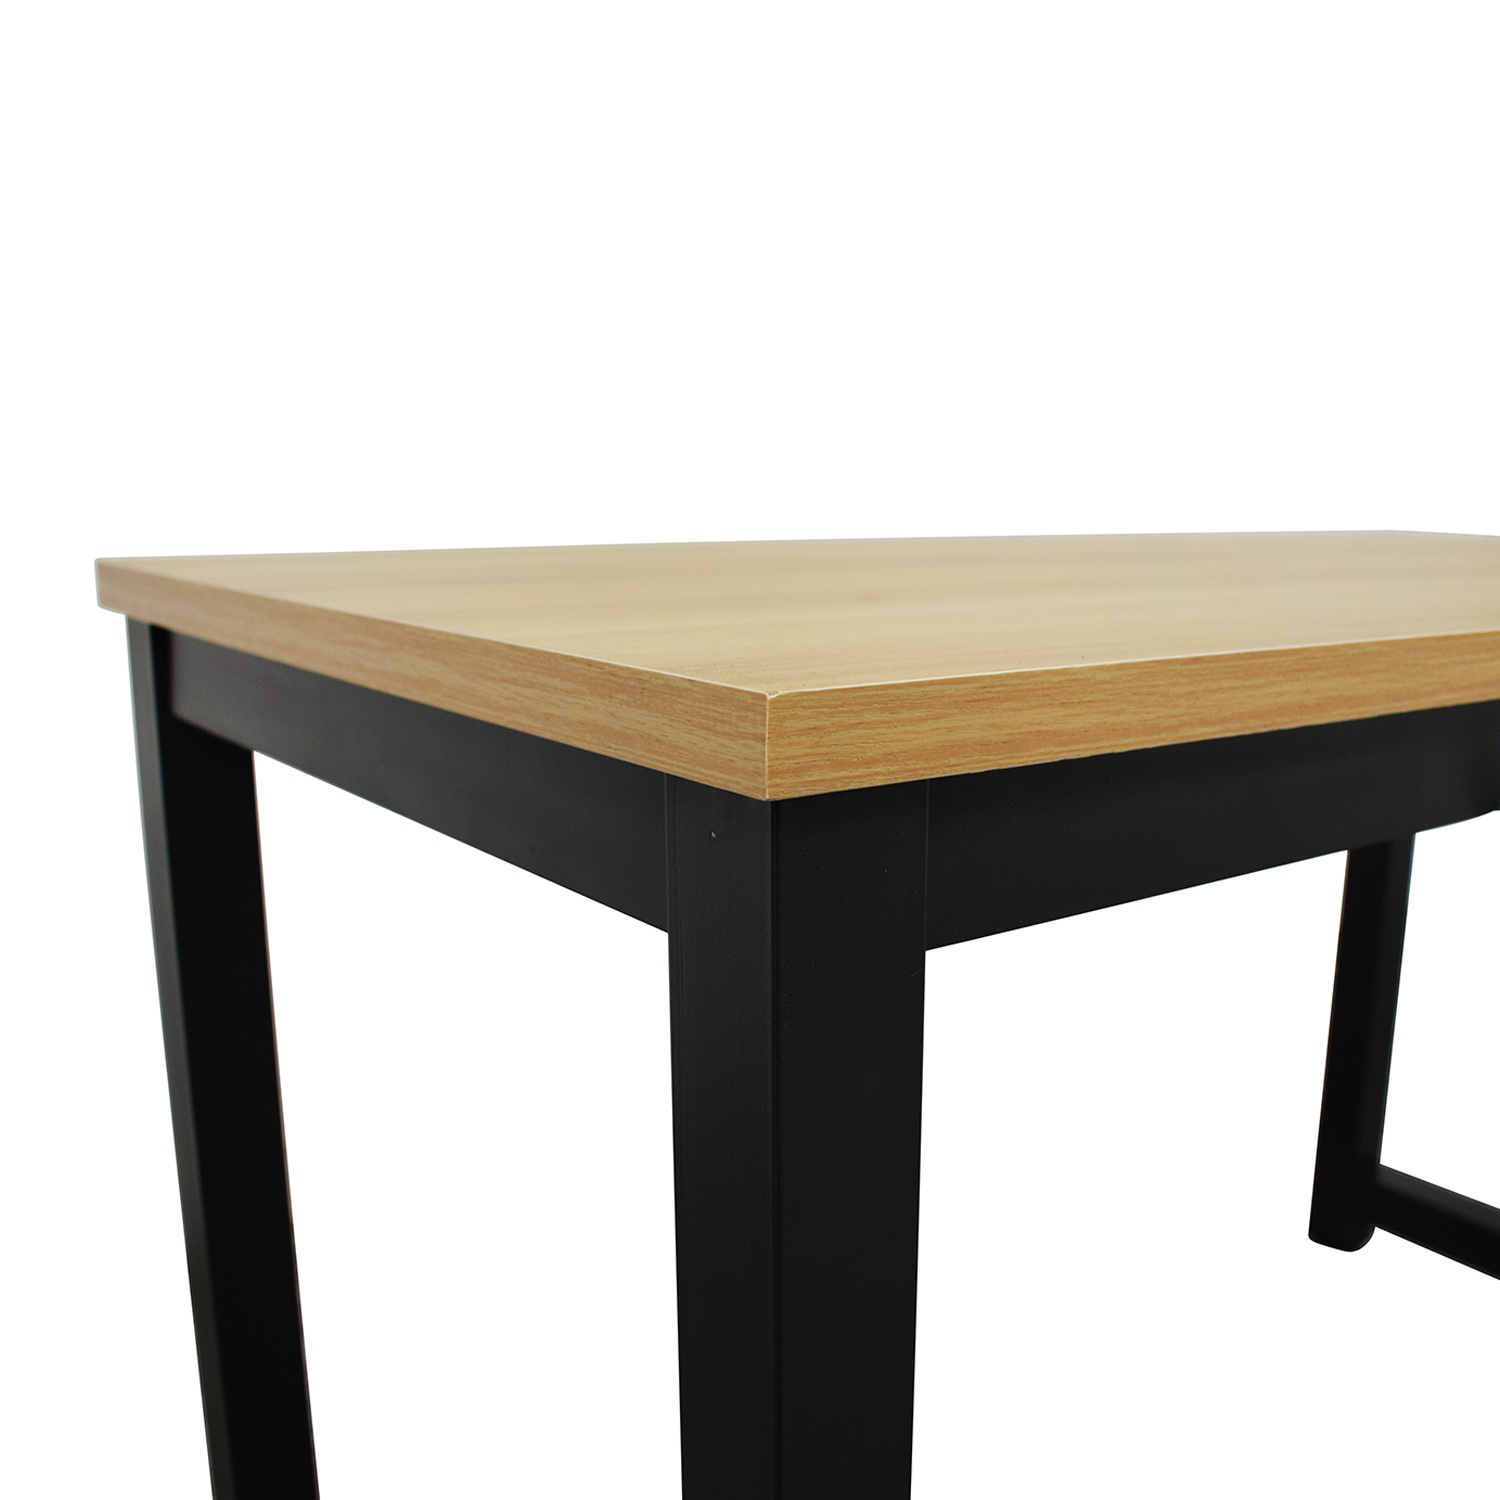 West Elm West Elm Box Frame Desk price